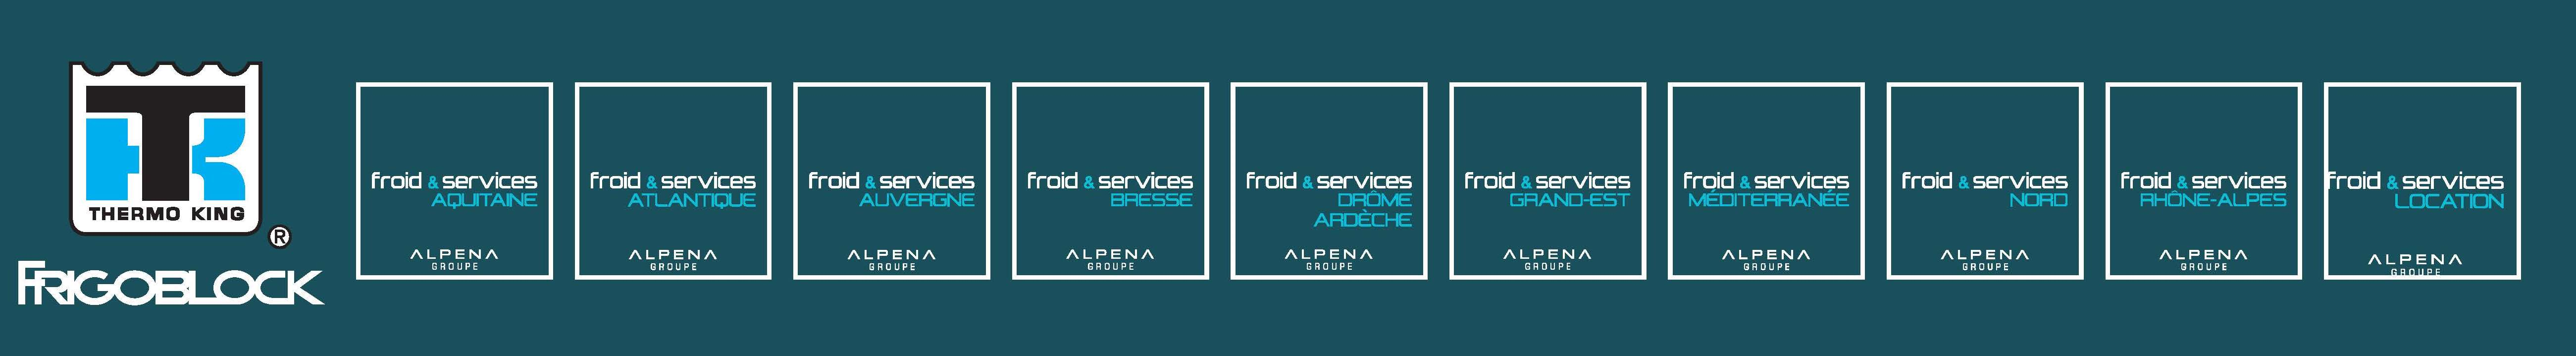 Firma FROID ET SERVICES